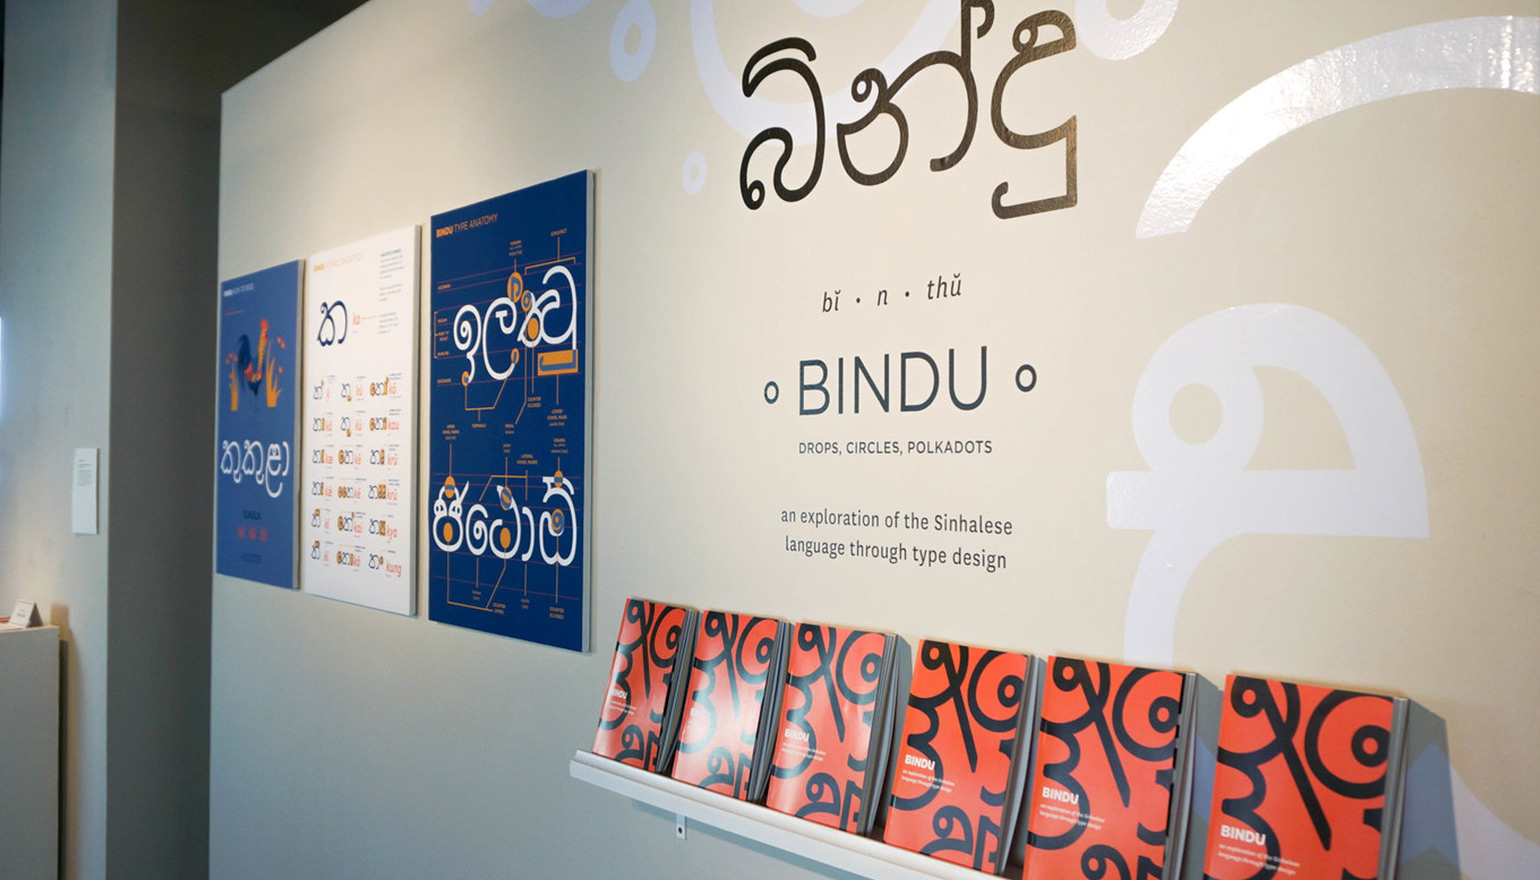 Gallery typographic project on display